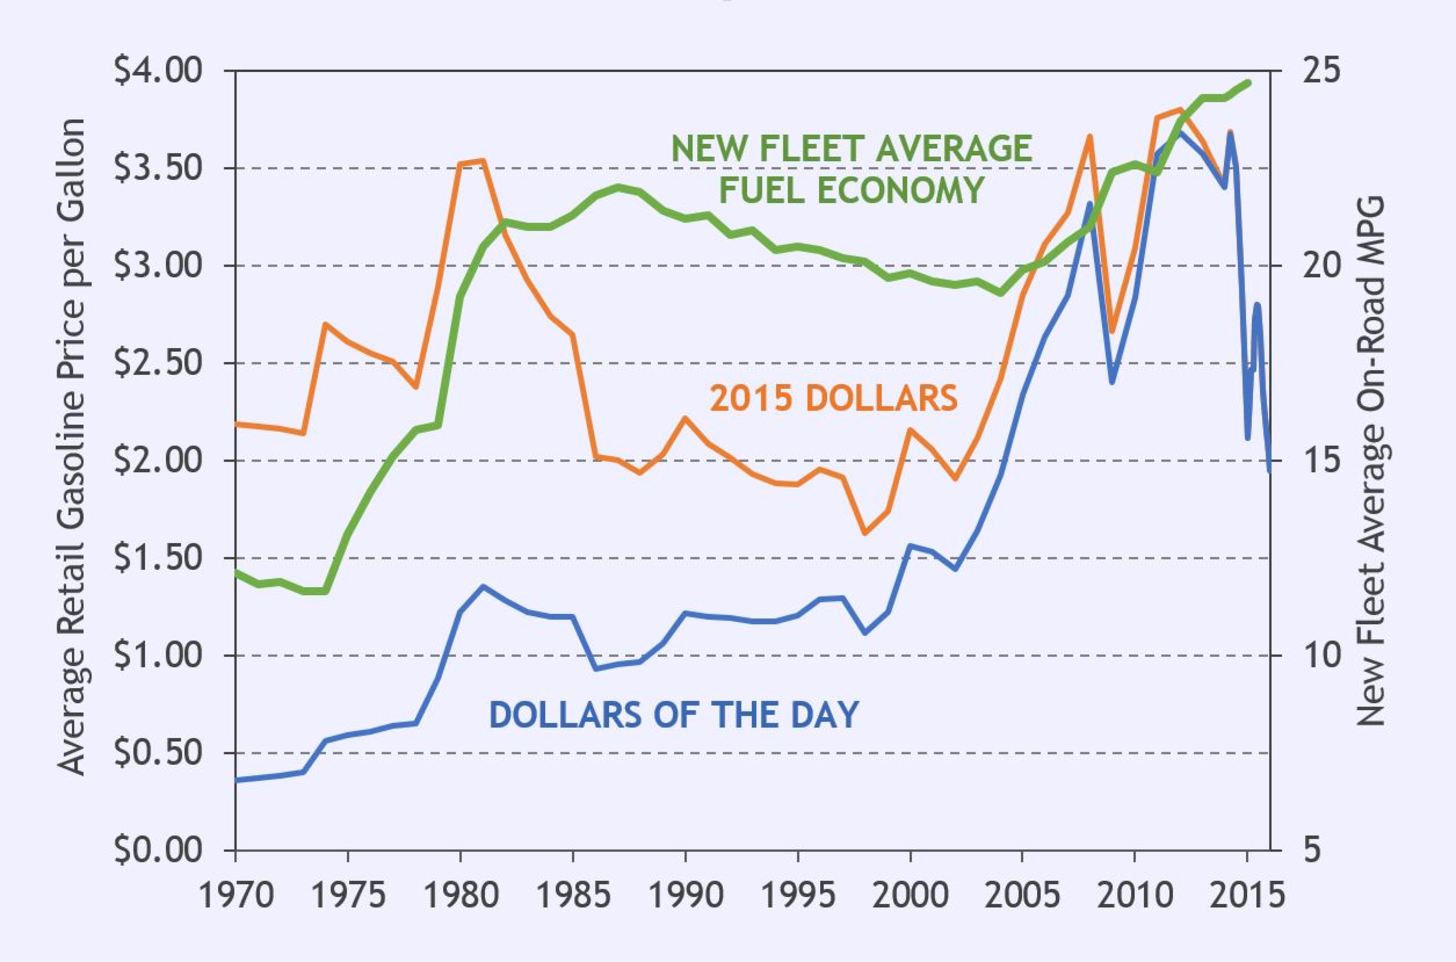 U.S. average retail gasoline prices and new light duty vehicle fuel economy since 1970.